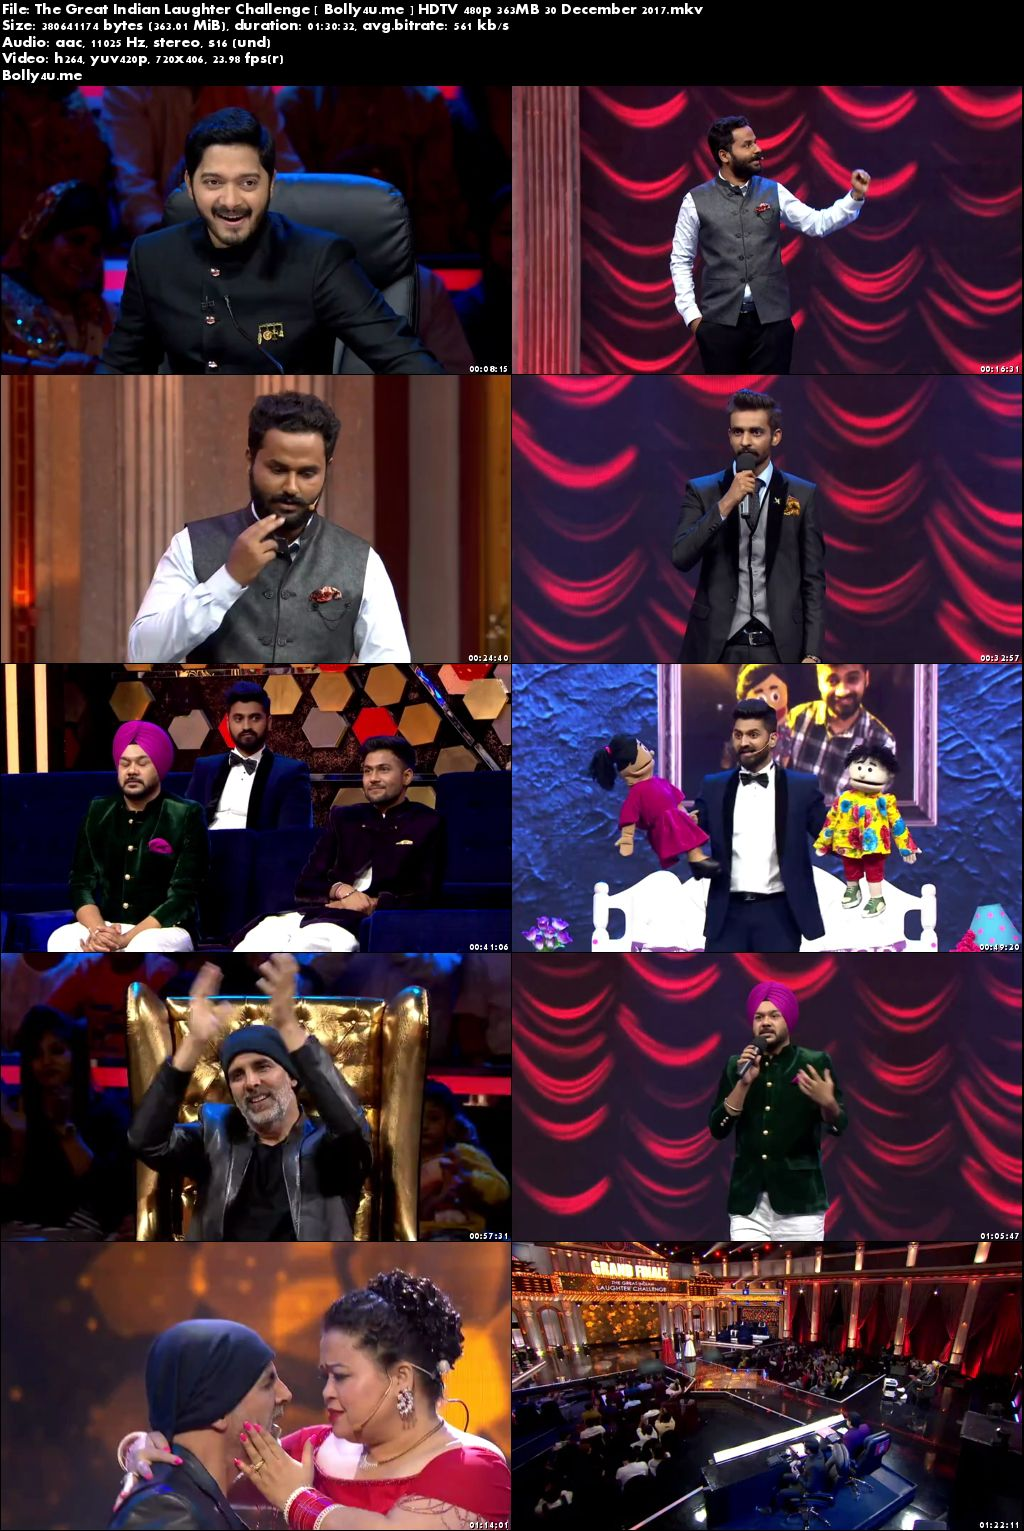 The Great Indian Laughter Challenge HDTV 480p 350MB 30 Dec 2017 Download